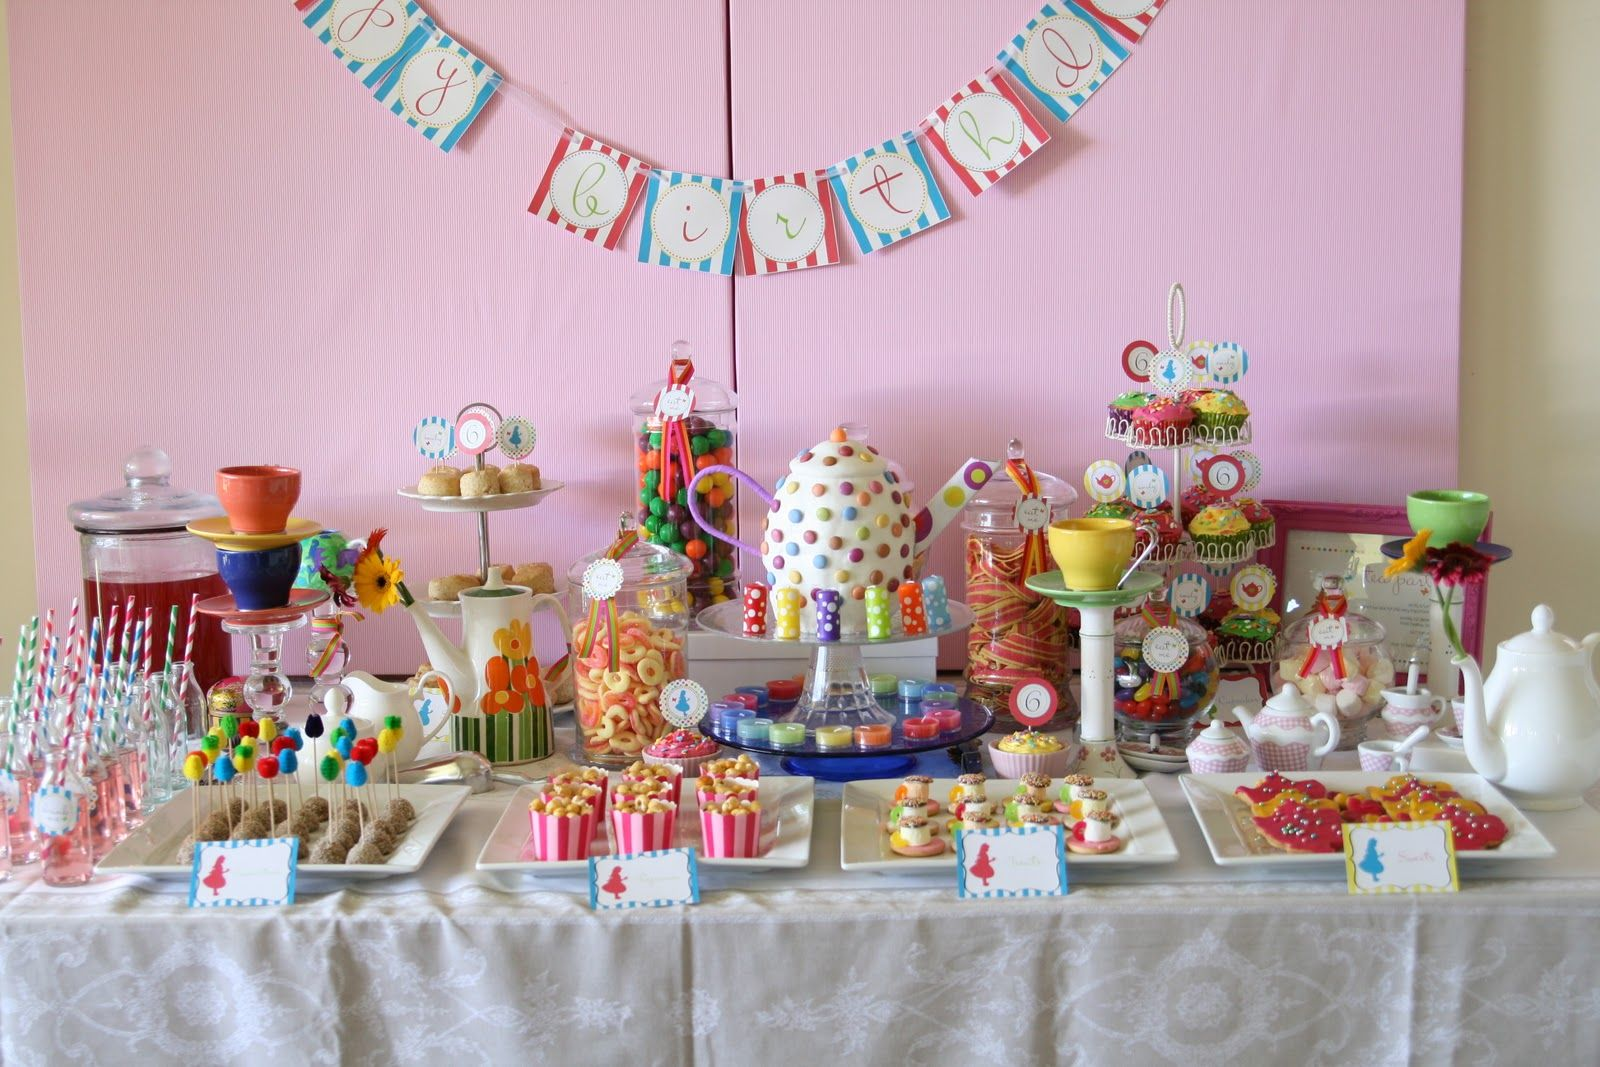 Mad hatter tea party decoration ideas - Mad Hatter Party Theme Could Be Perfect For K S 3rd Bday Since She Looooves Alice